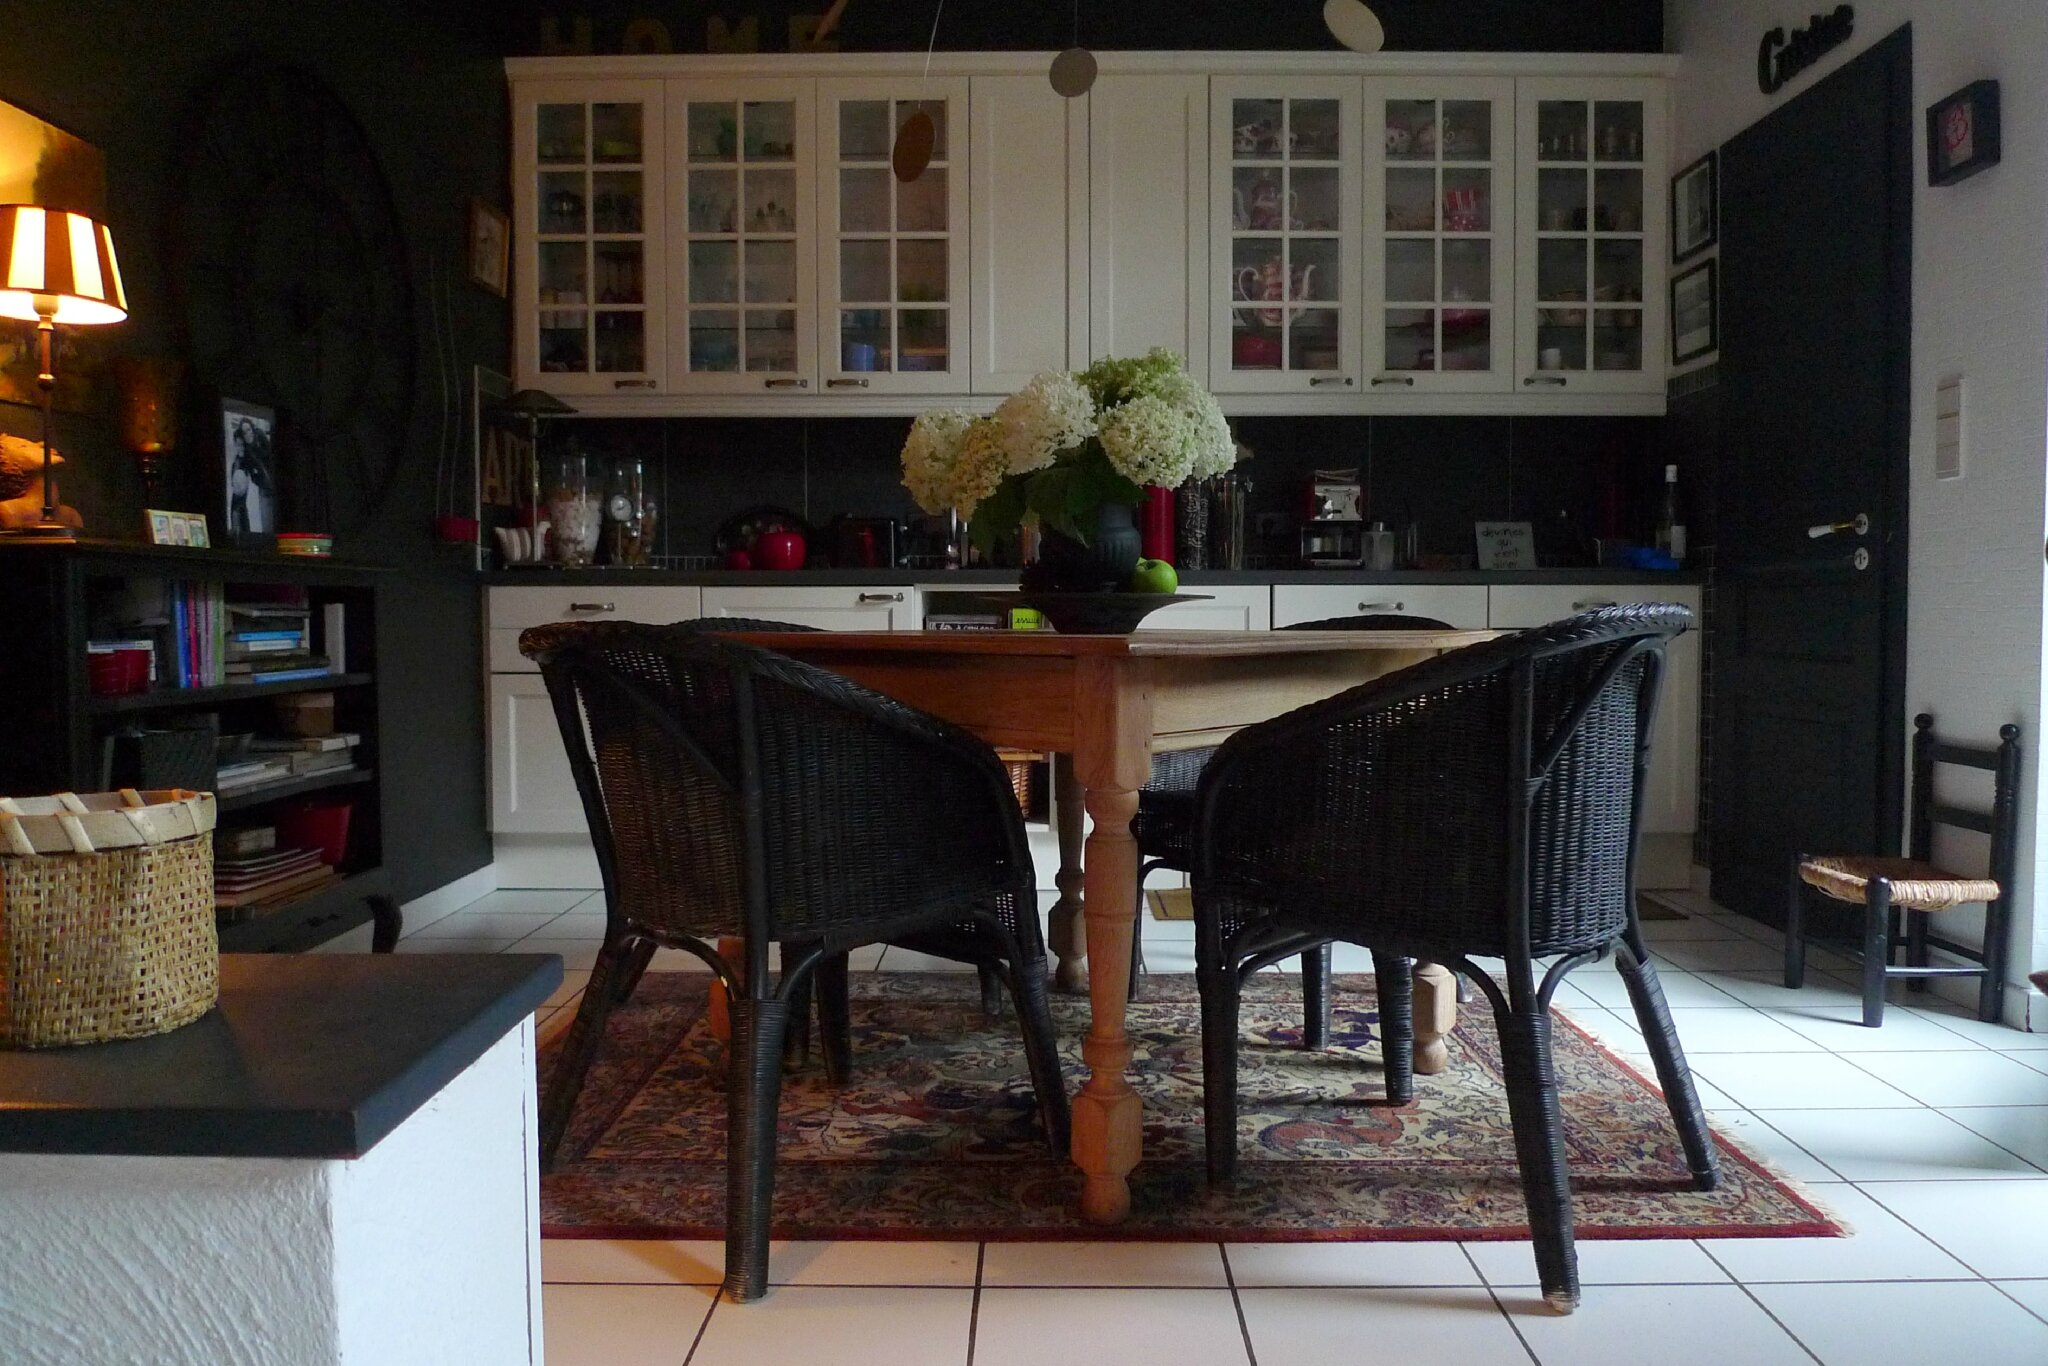 Chaises rotin bistrot images - Chaise de cuisine style bistrot ...